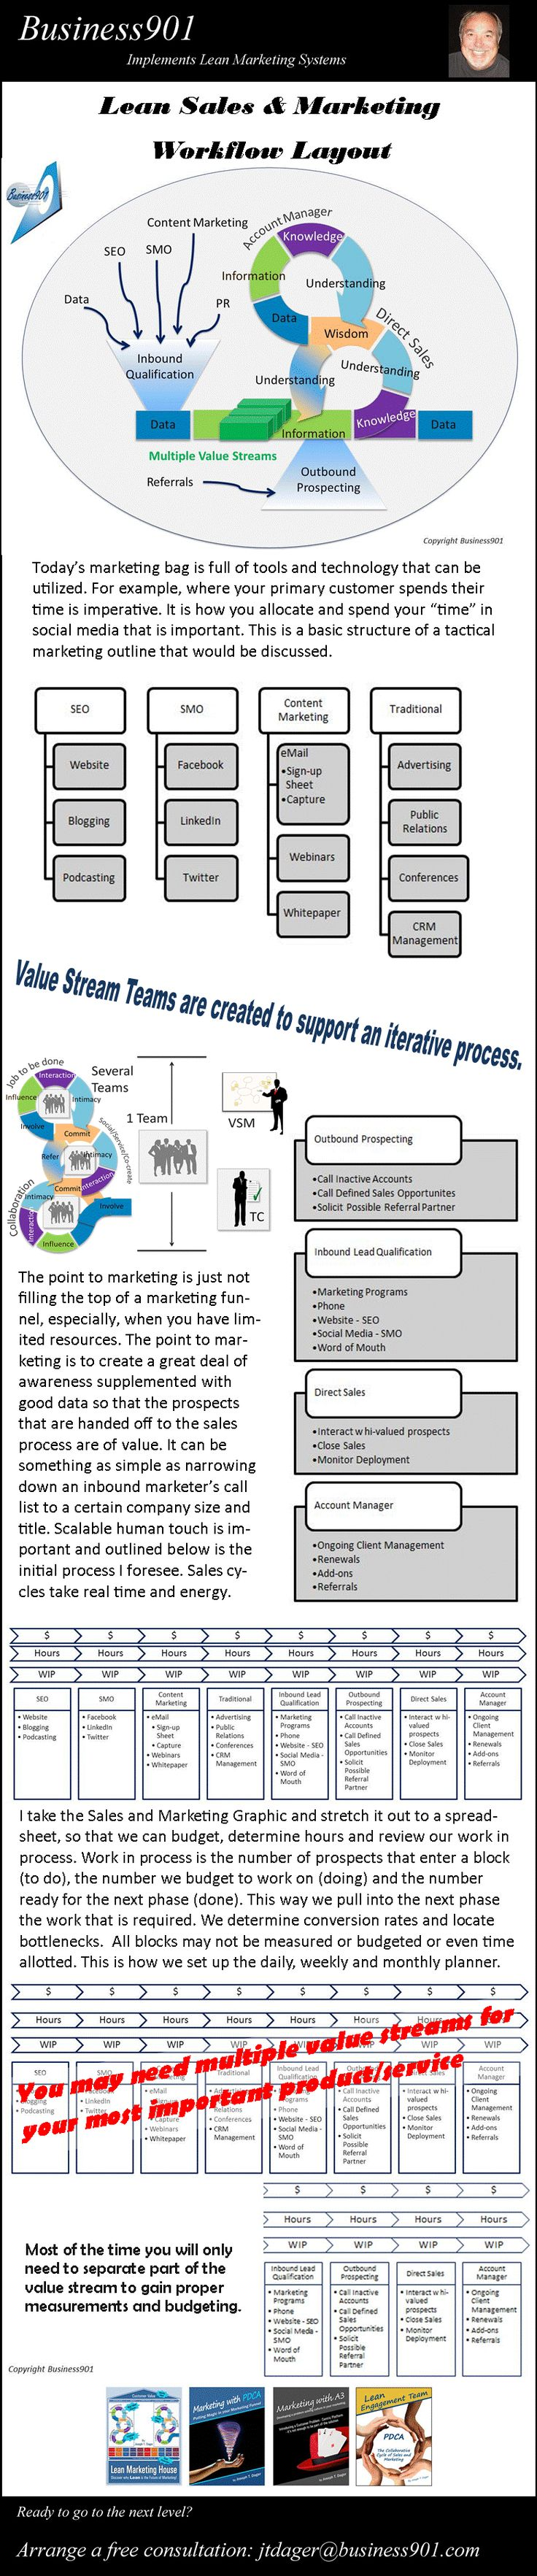 Lean Sales and Marketing Workflow